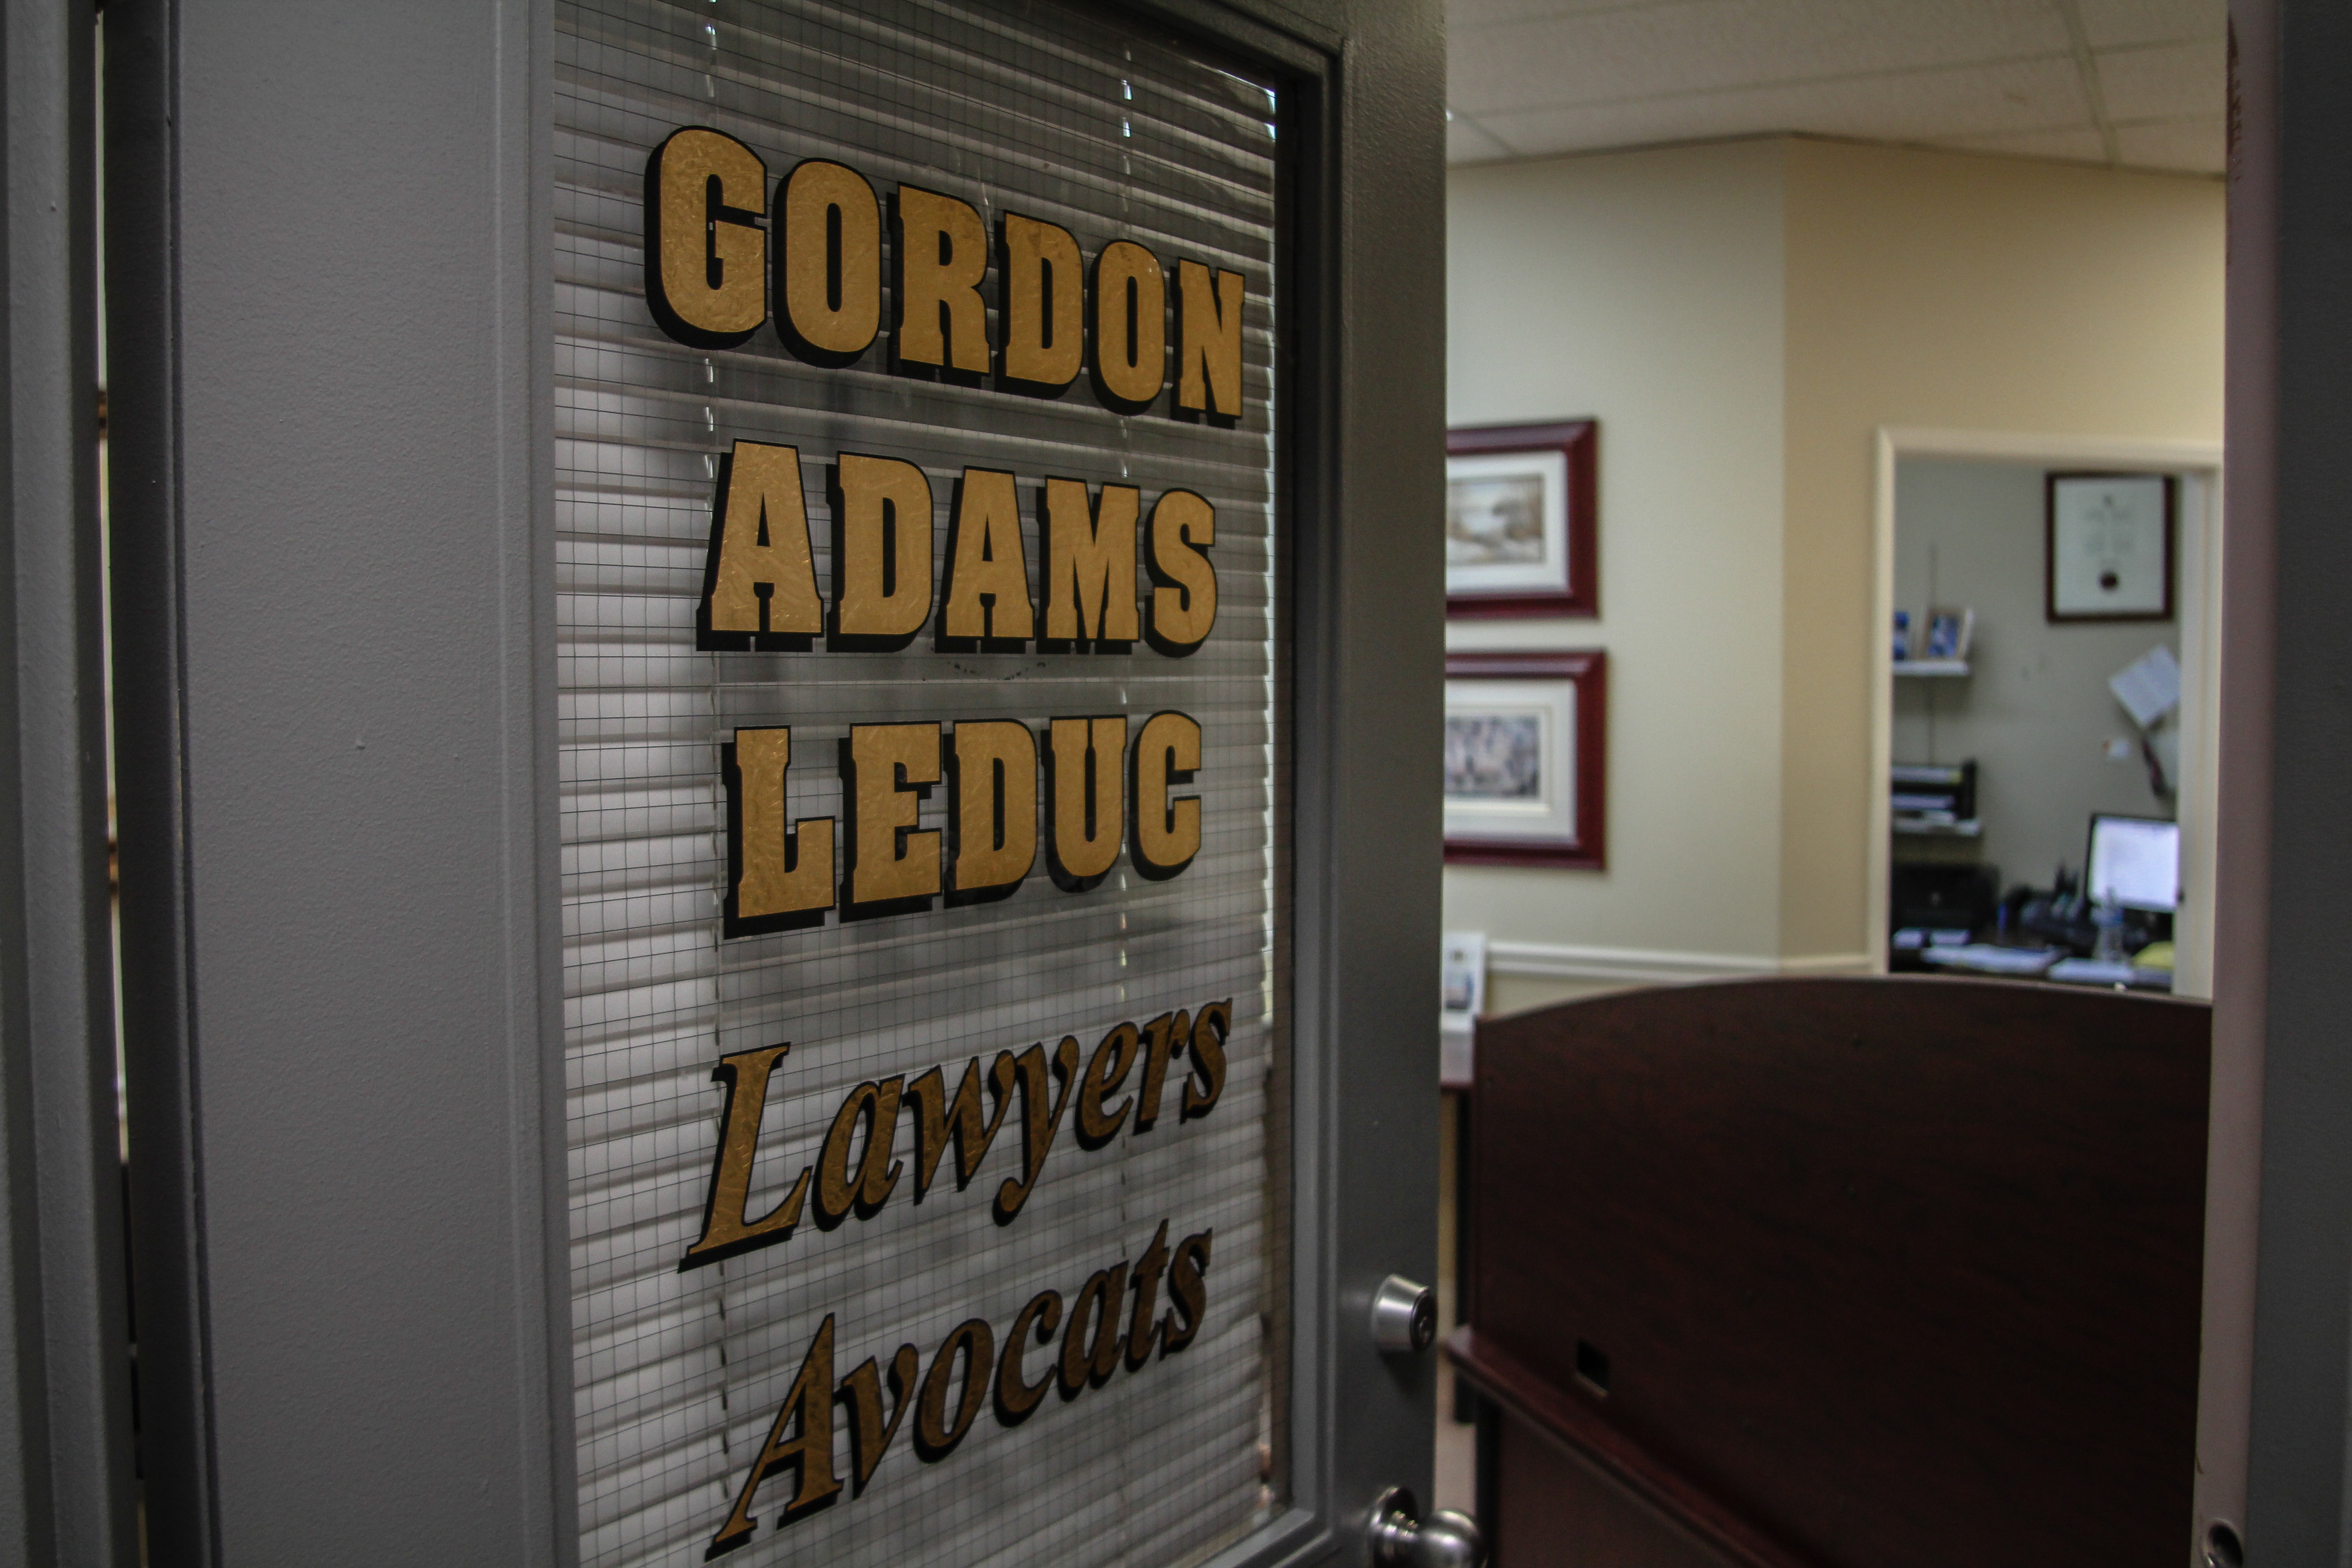 Adams & Leduc Law Office